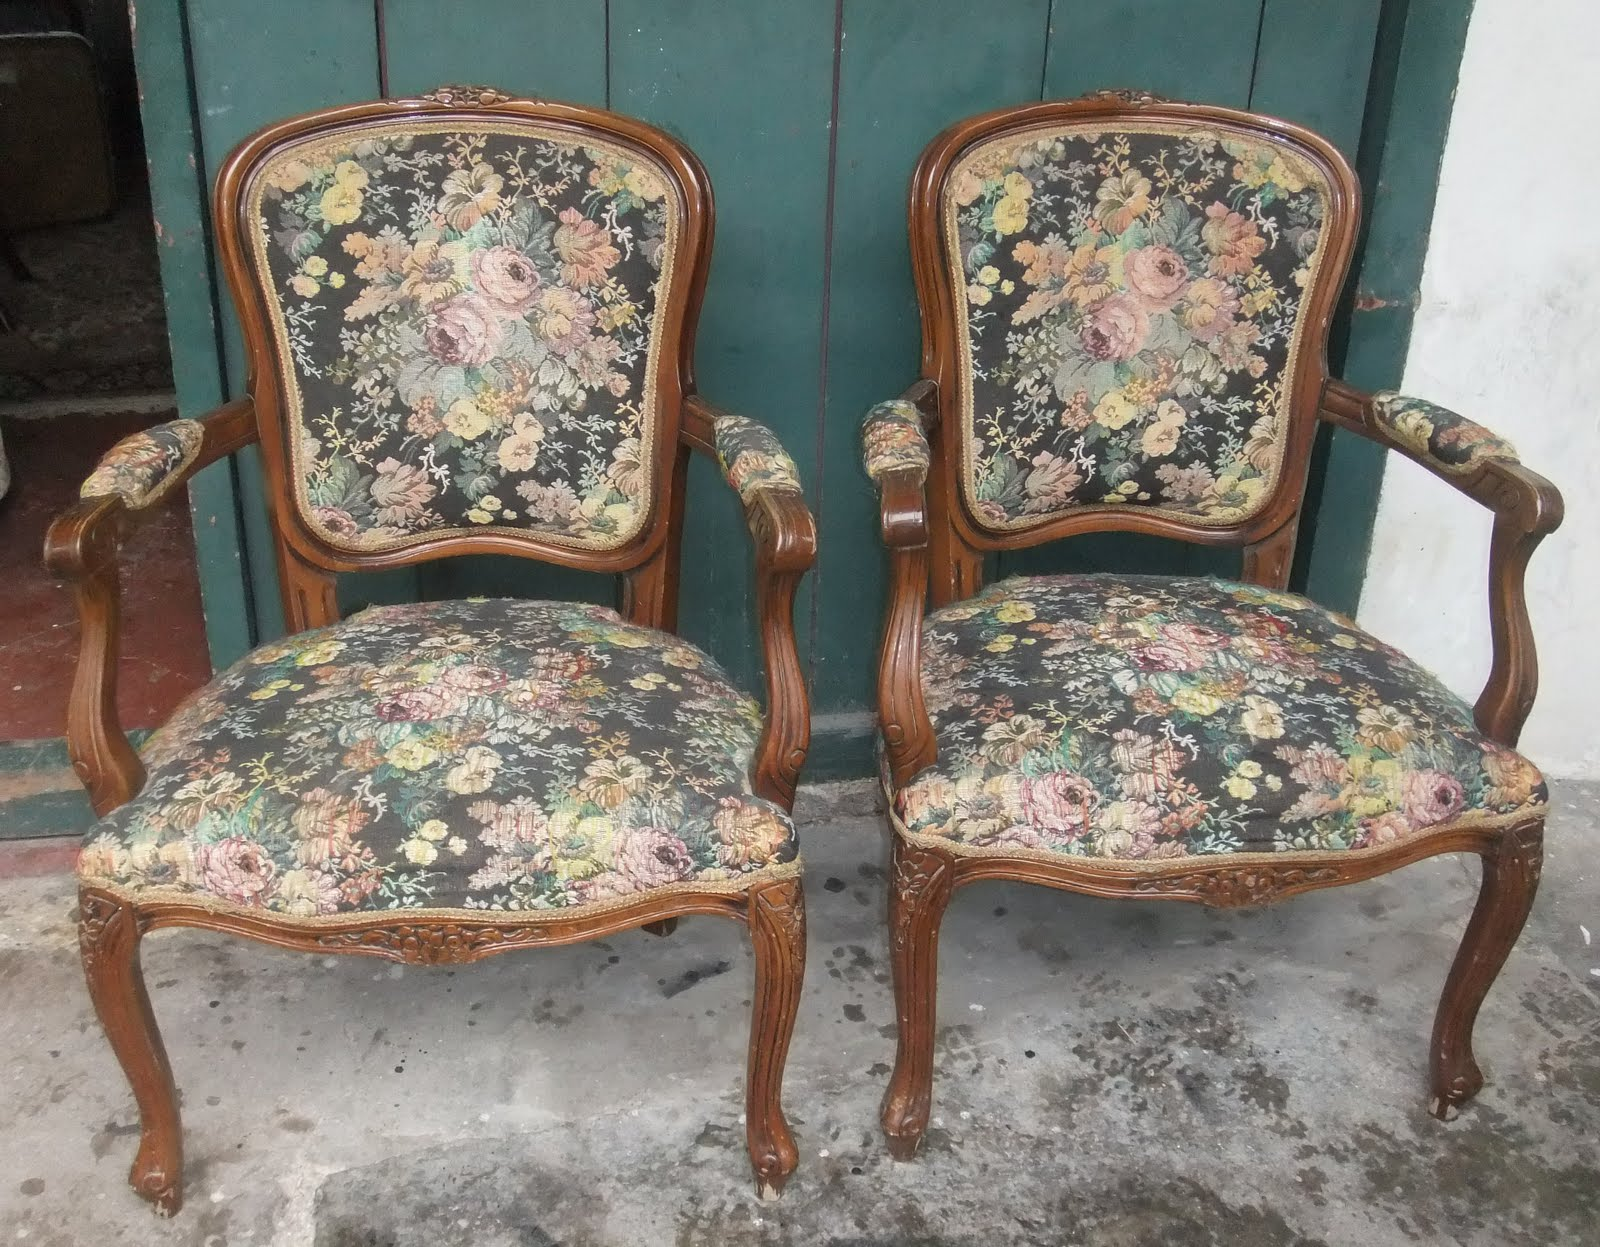 how to recane a chair covers grand rapids furniture fusion combining vintage and modern ashley